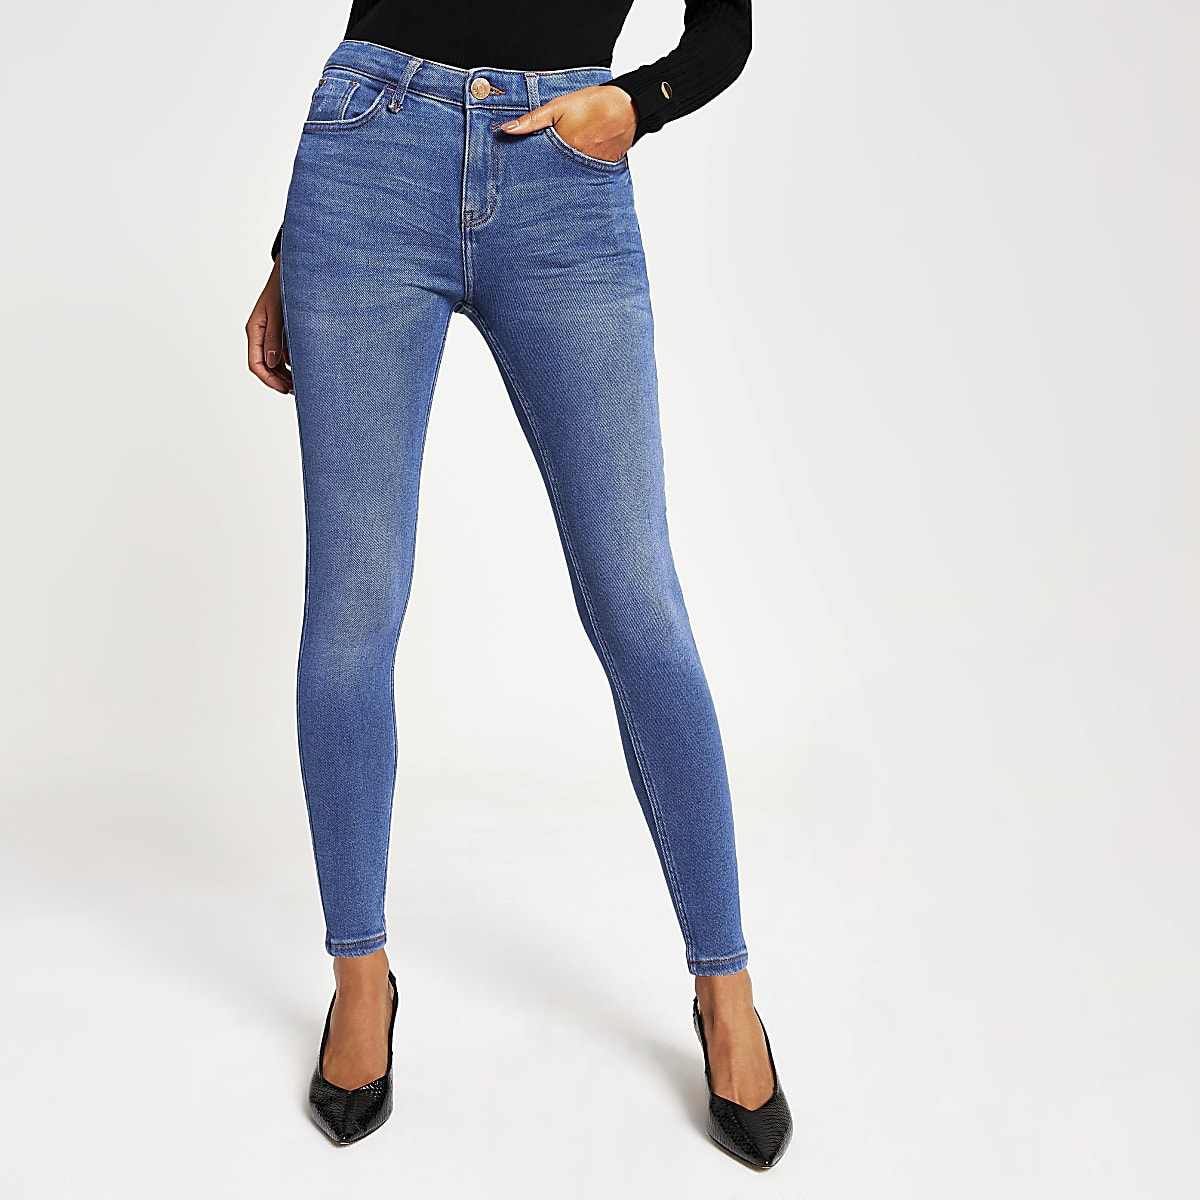 Bright blue Amelie mid rise skinny jeans